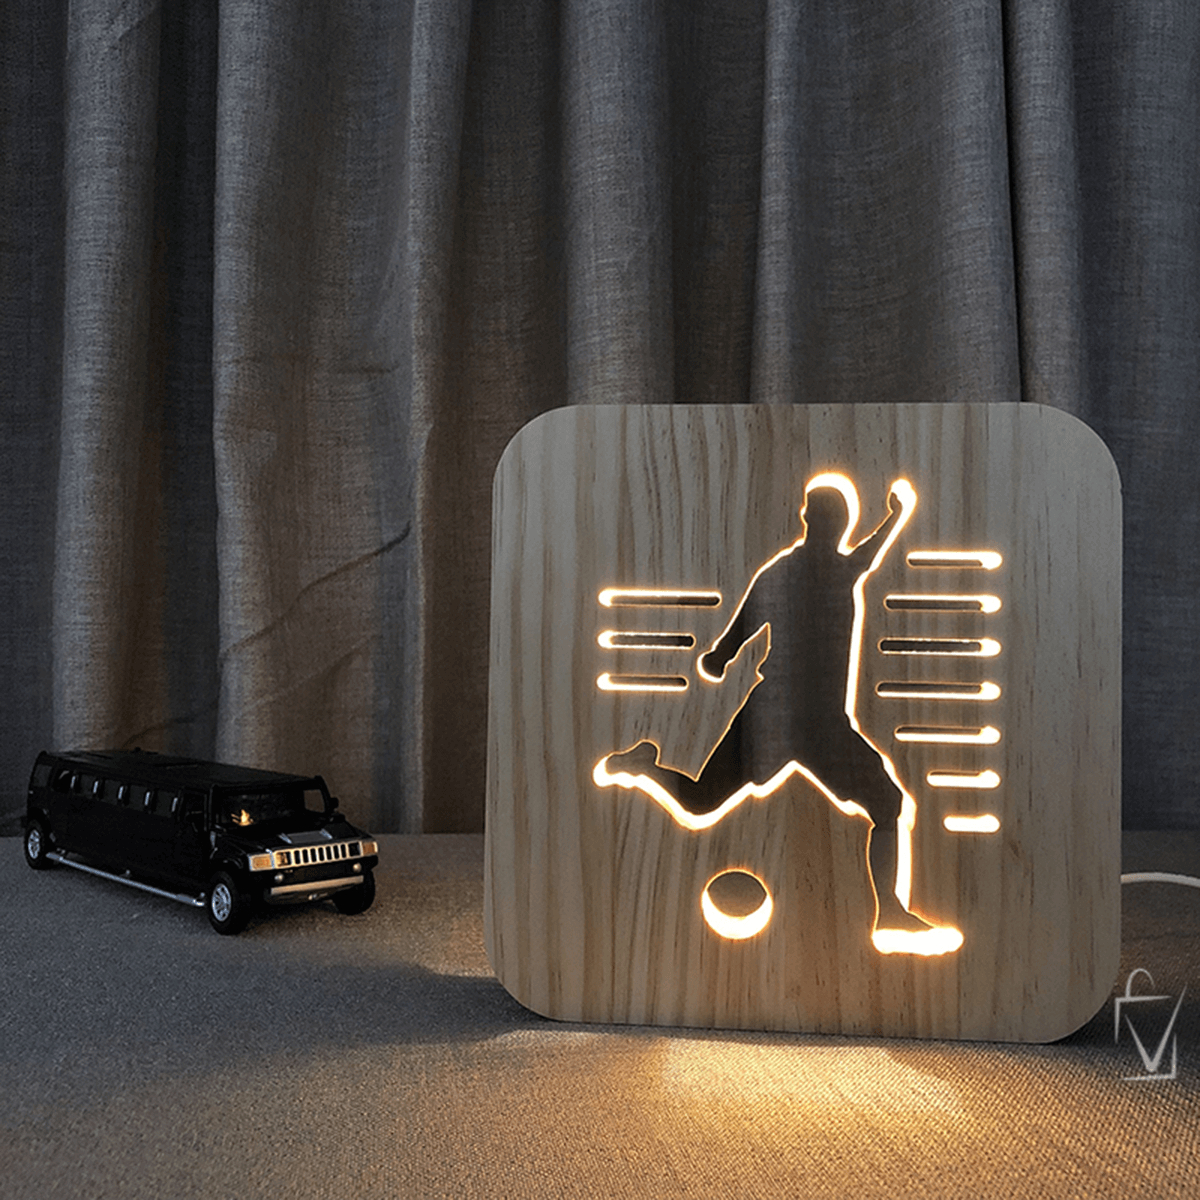 The Unique Wooden LED Football Lamp